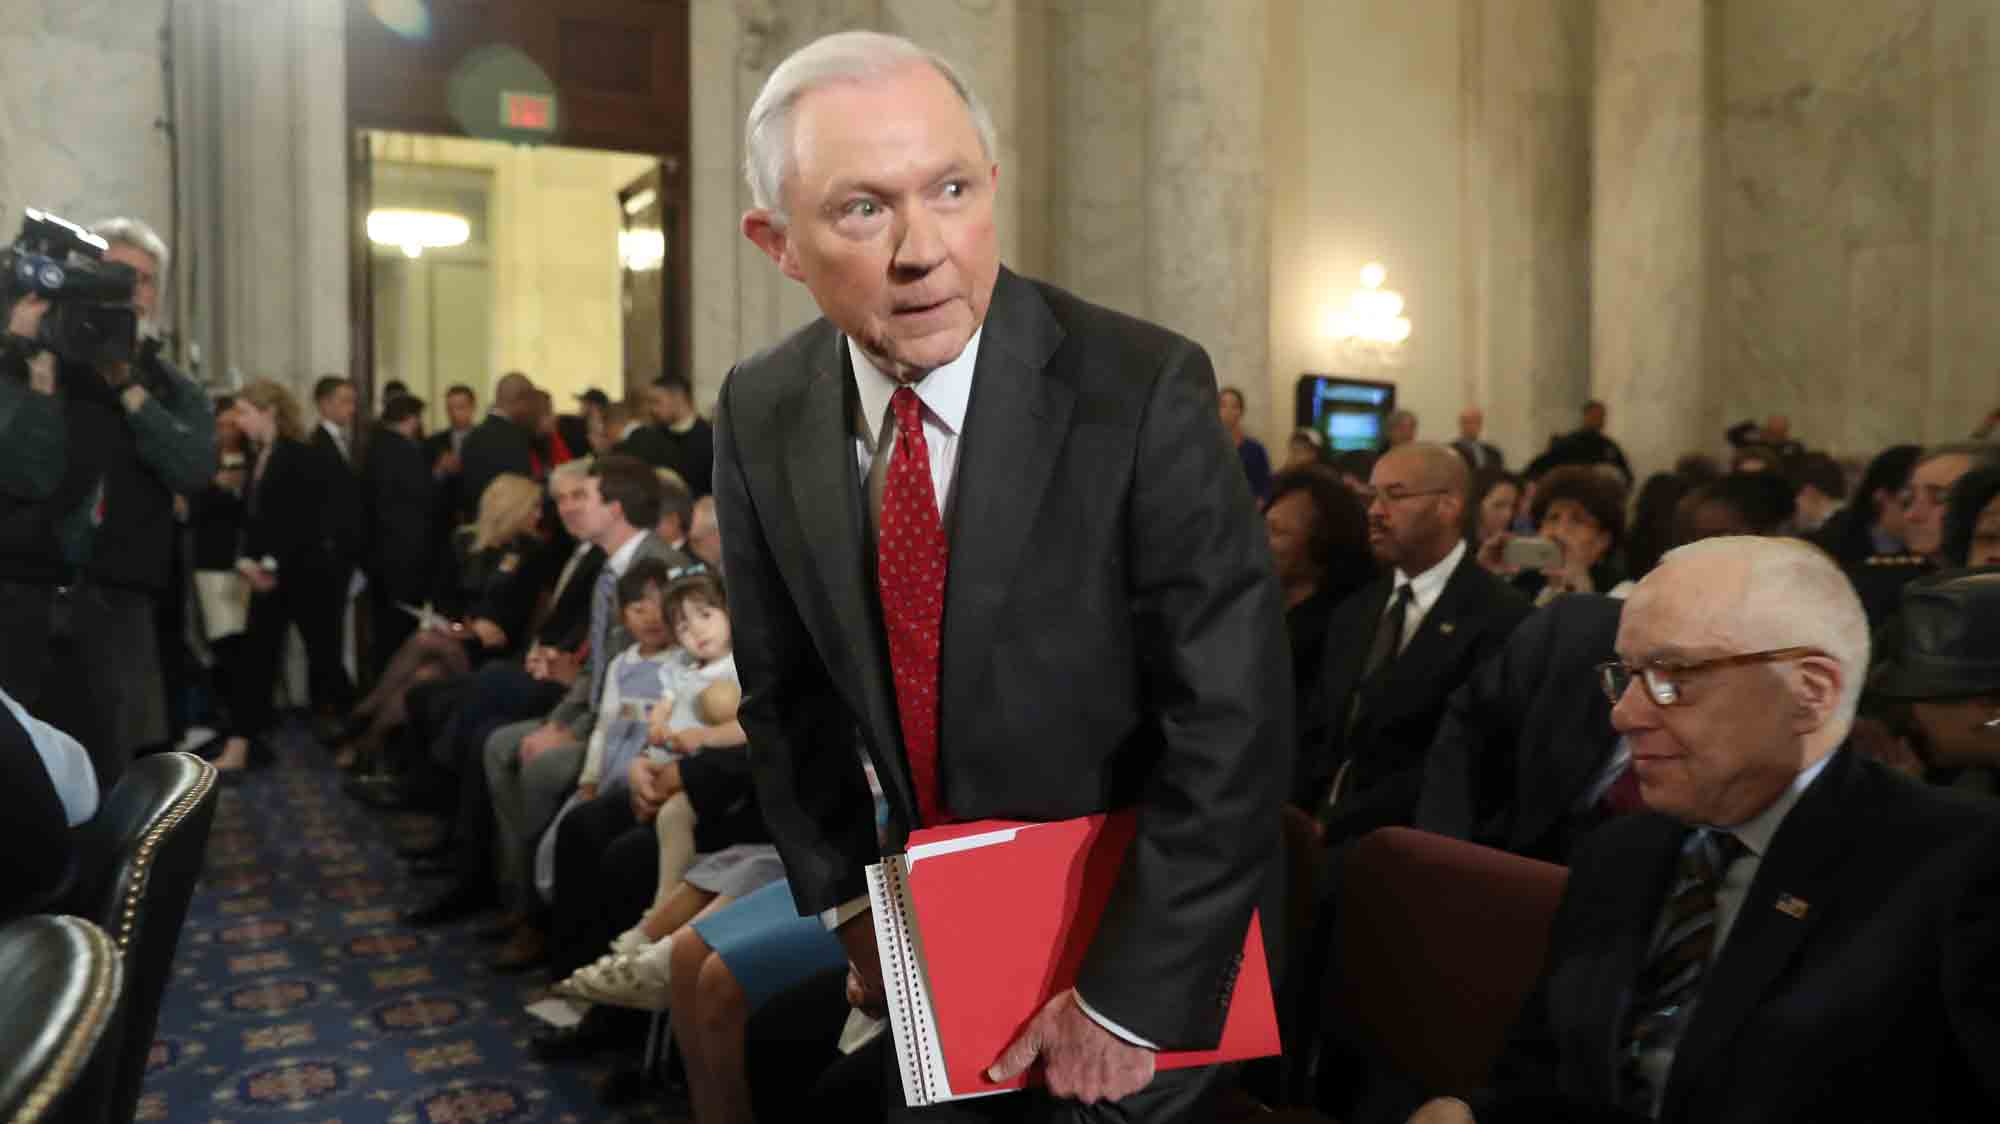 Jeff Sessions Channels Donald Trump on Russian Hacking